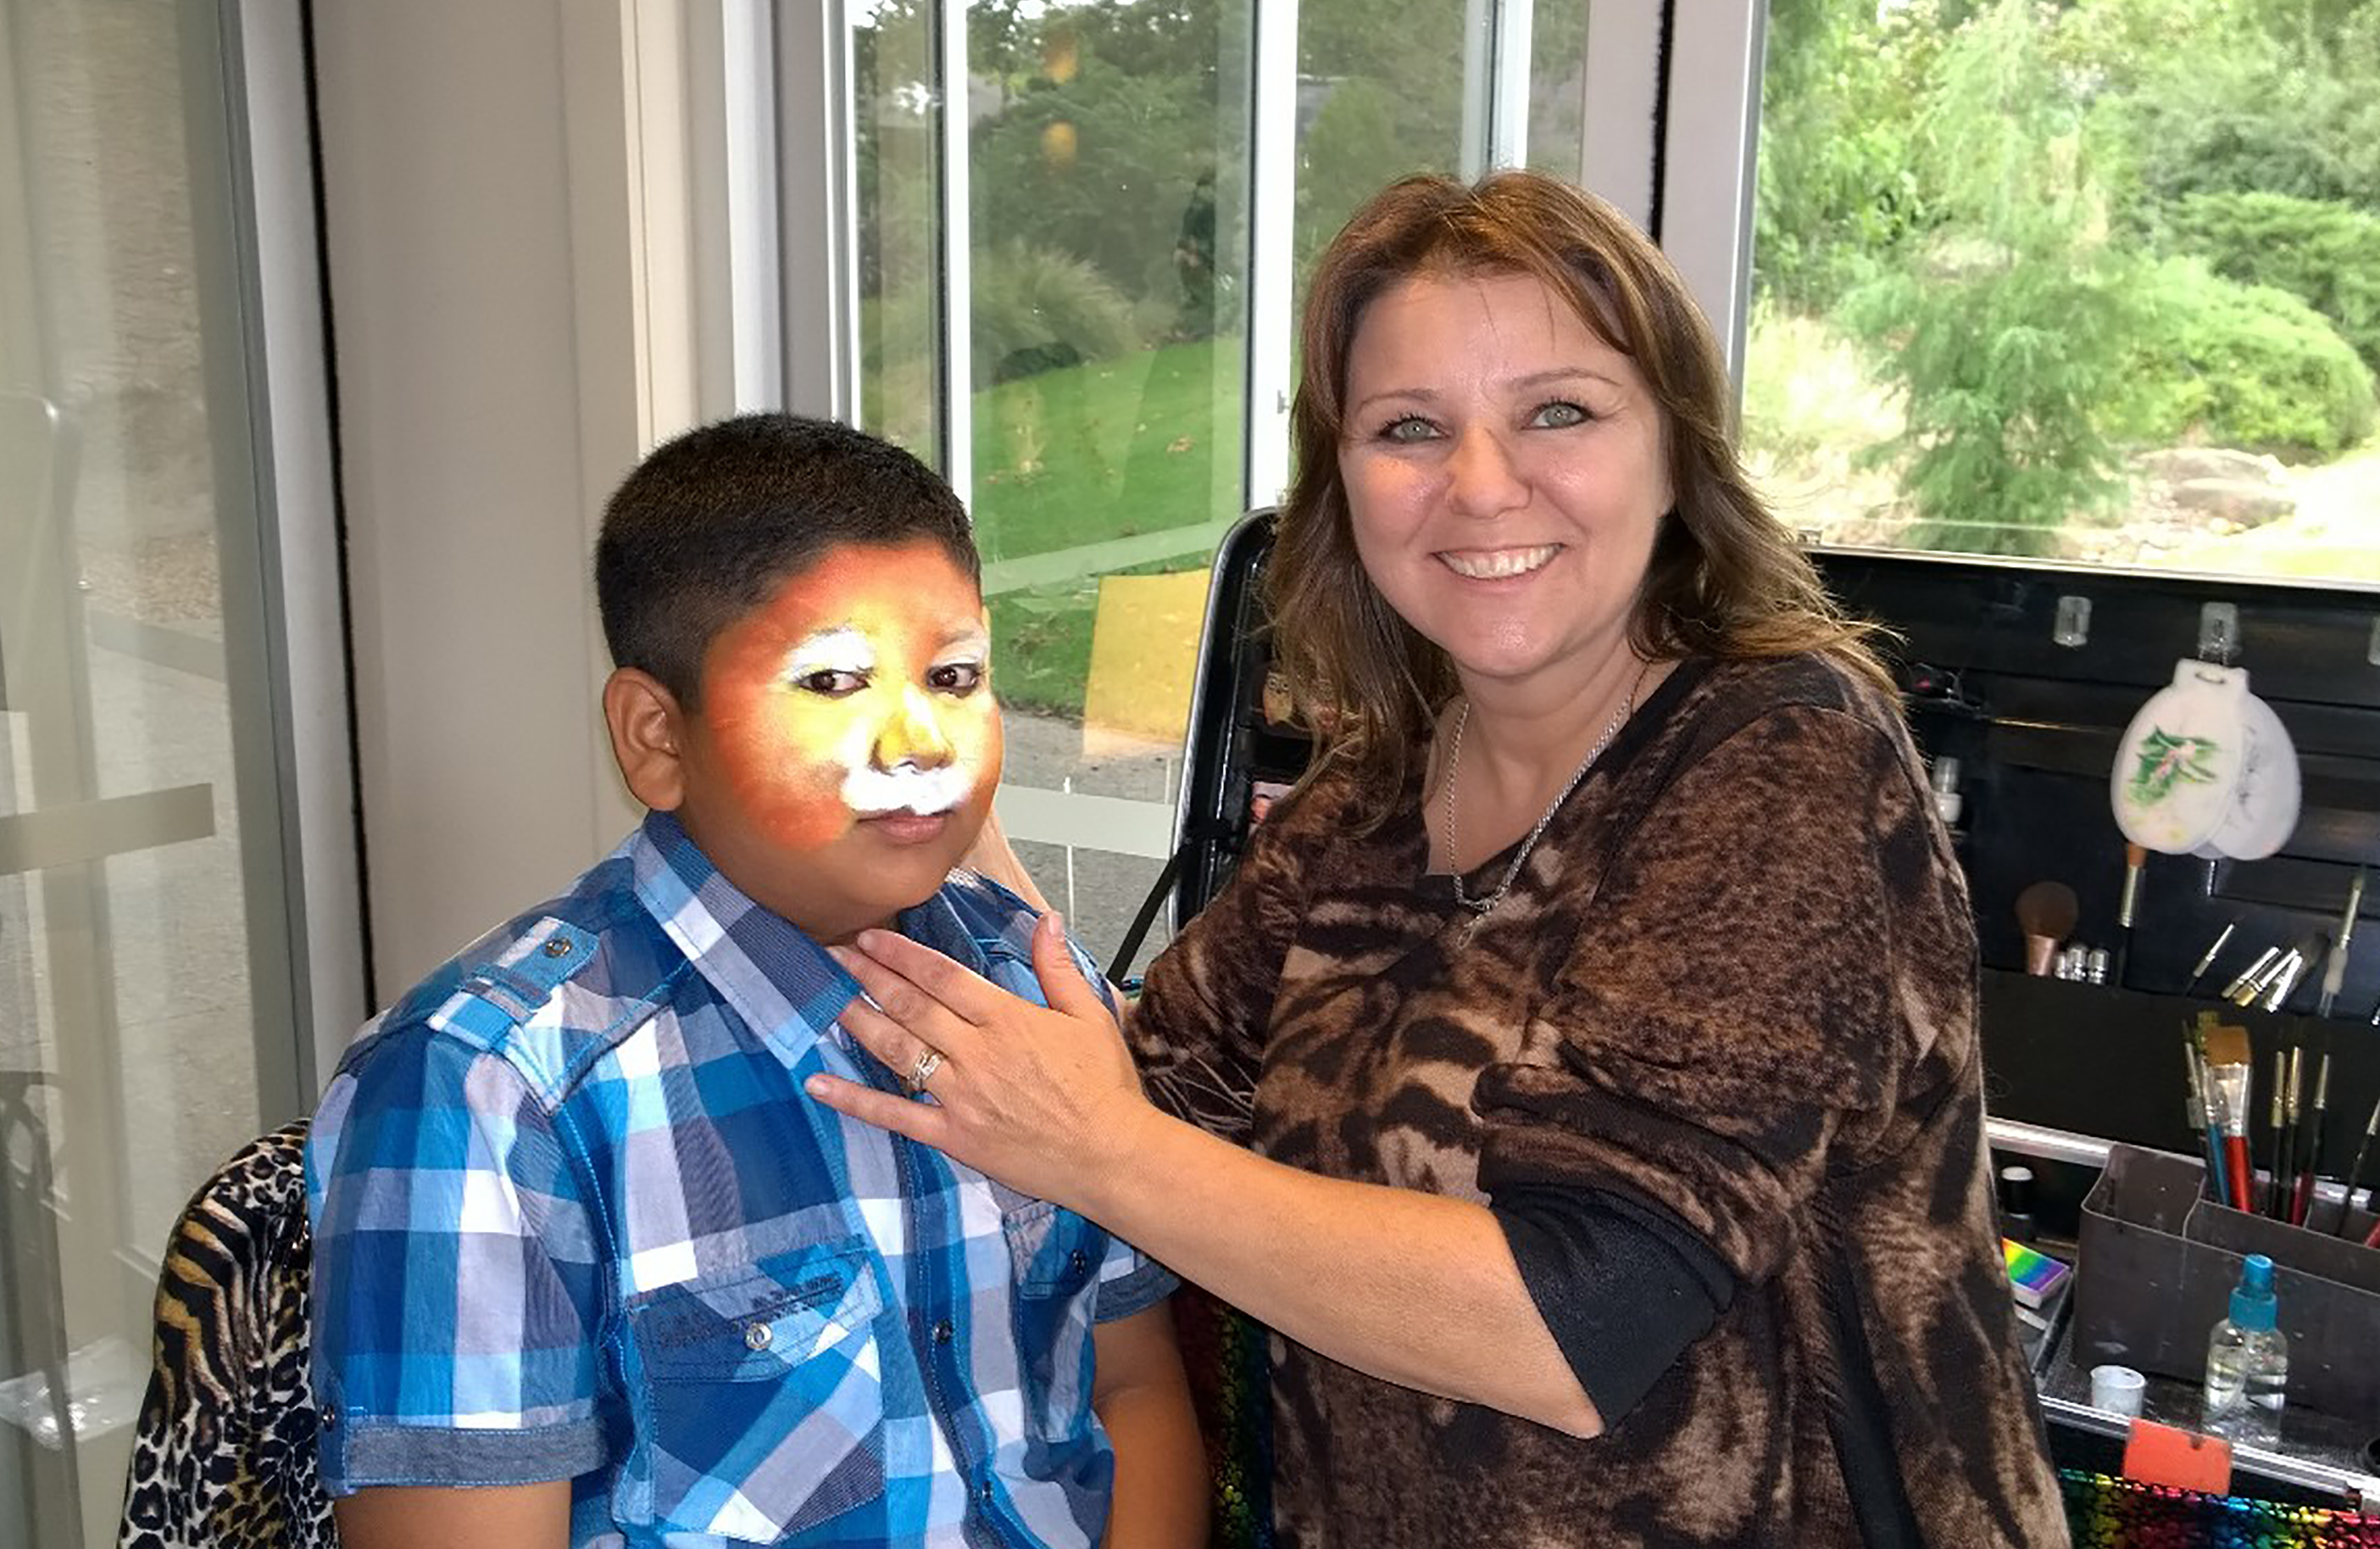 Family day 2016 - Face painting